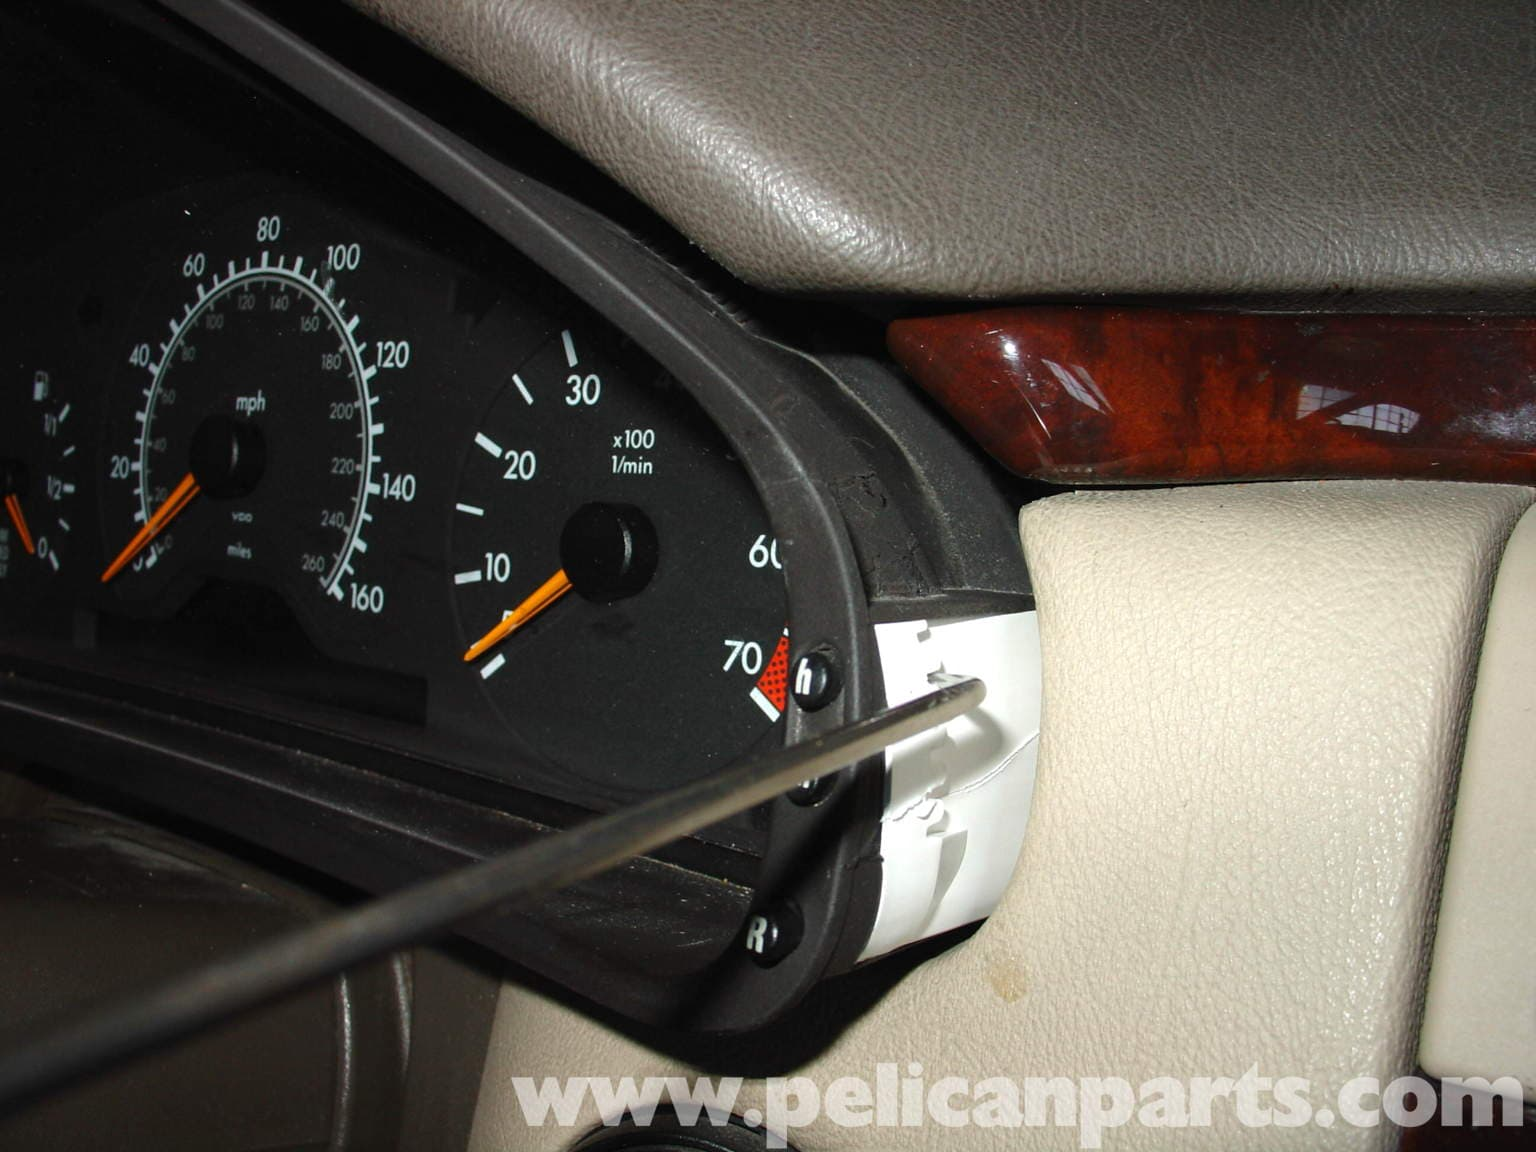 Mercedes Benz W210 Instrument Cluster Bulb Replacement